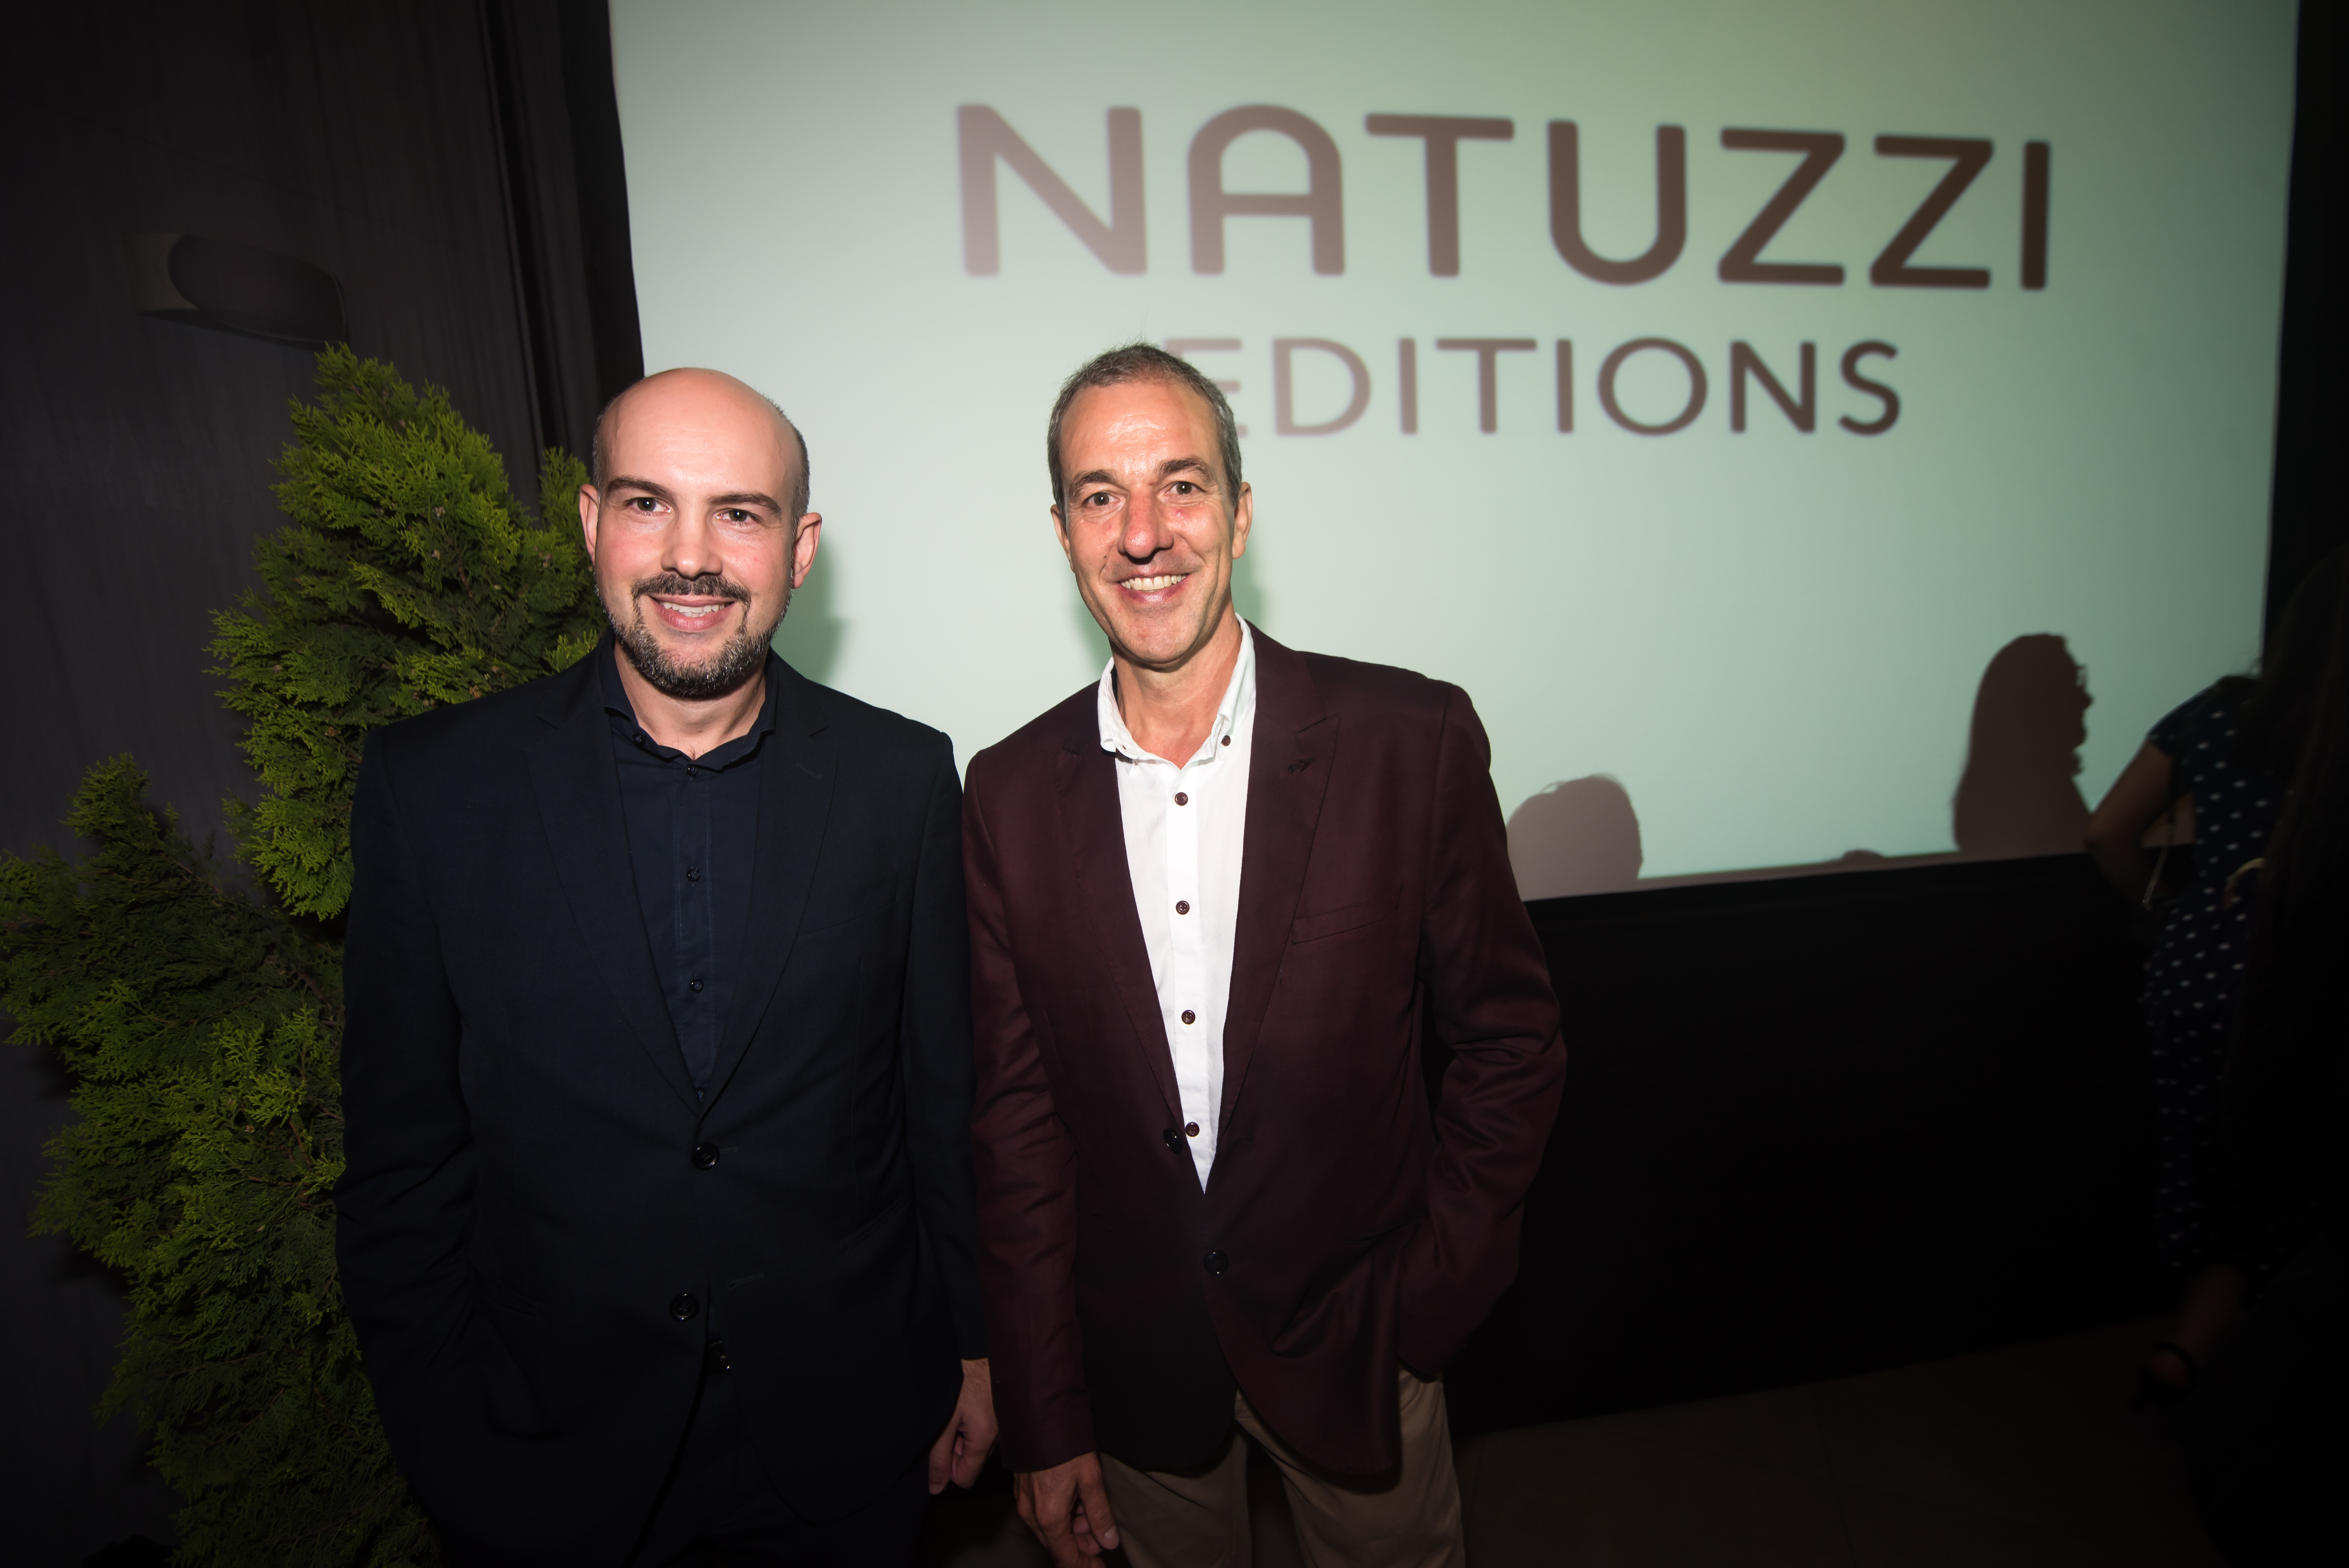 14 Luciano y Christoph 2.jpg